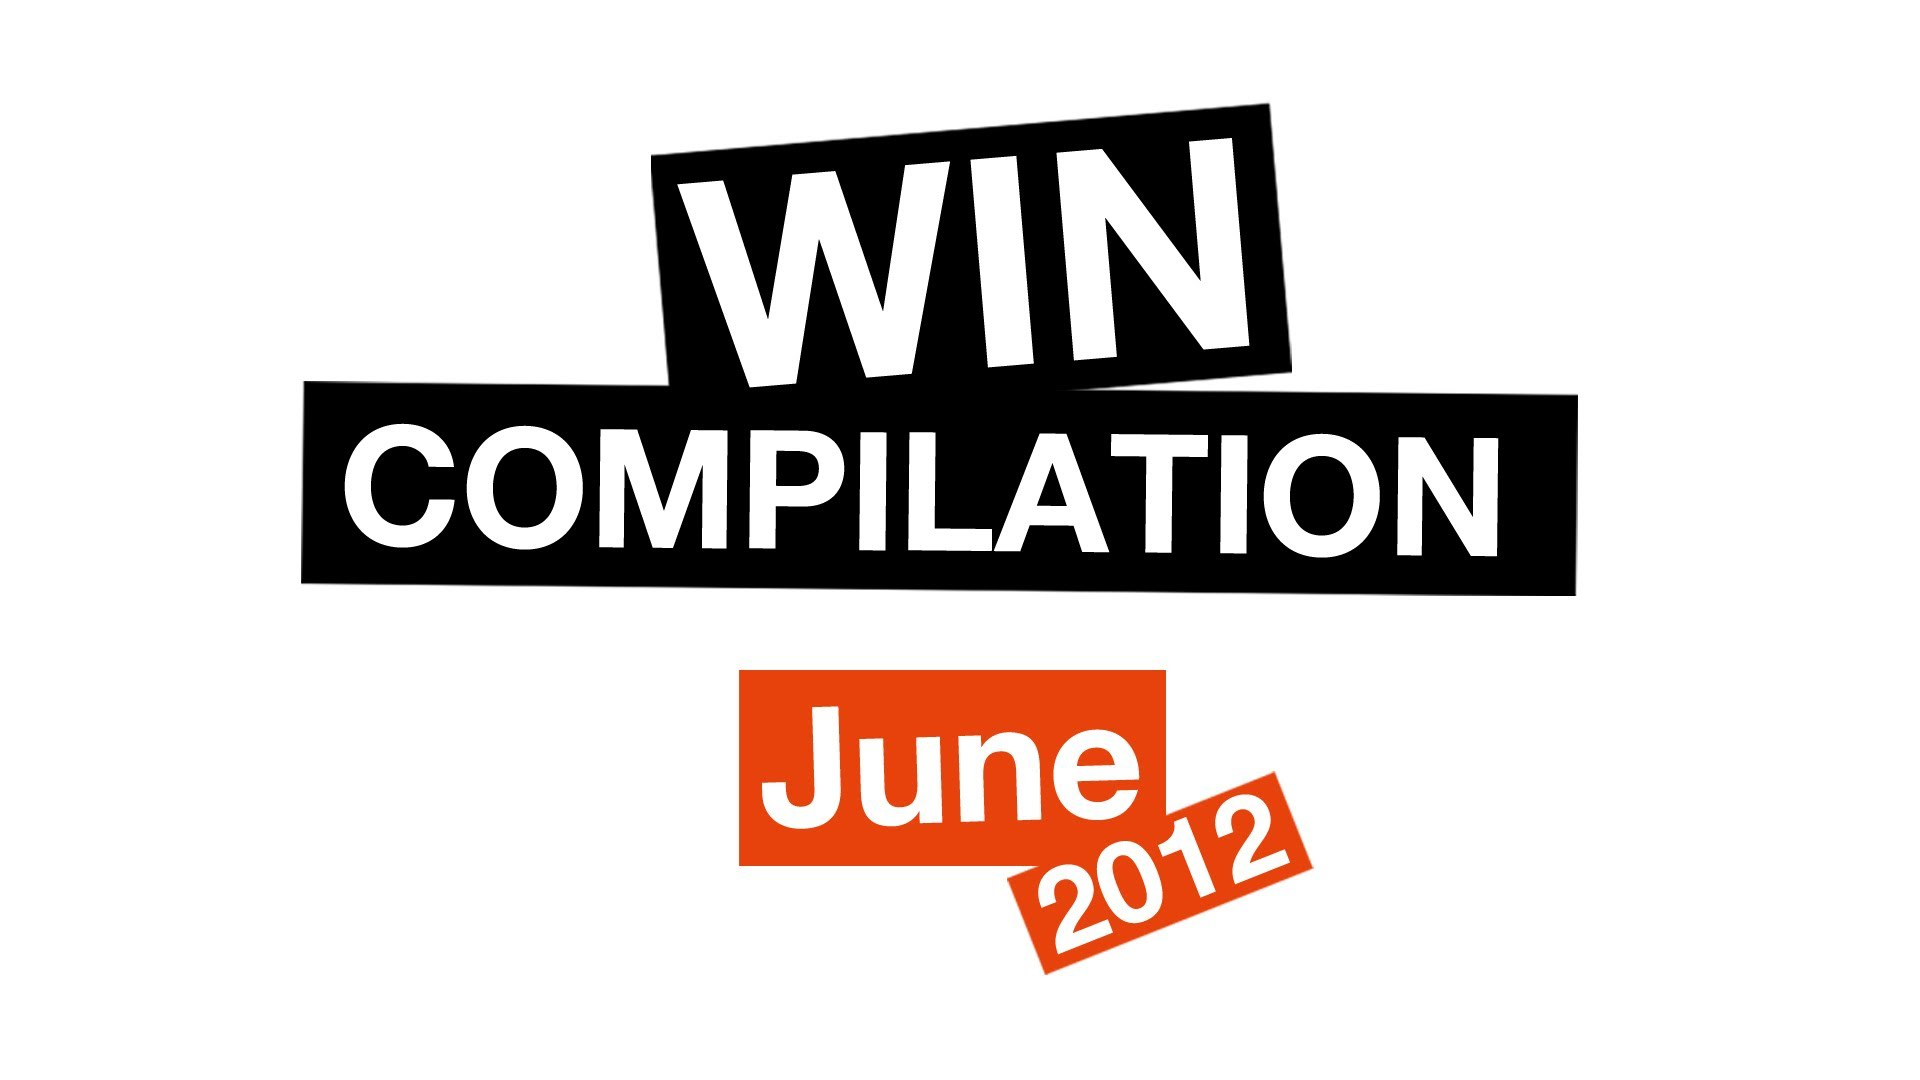 WIN Compilation June 2012